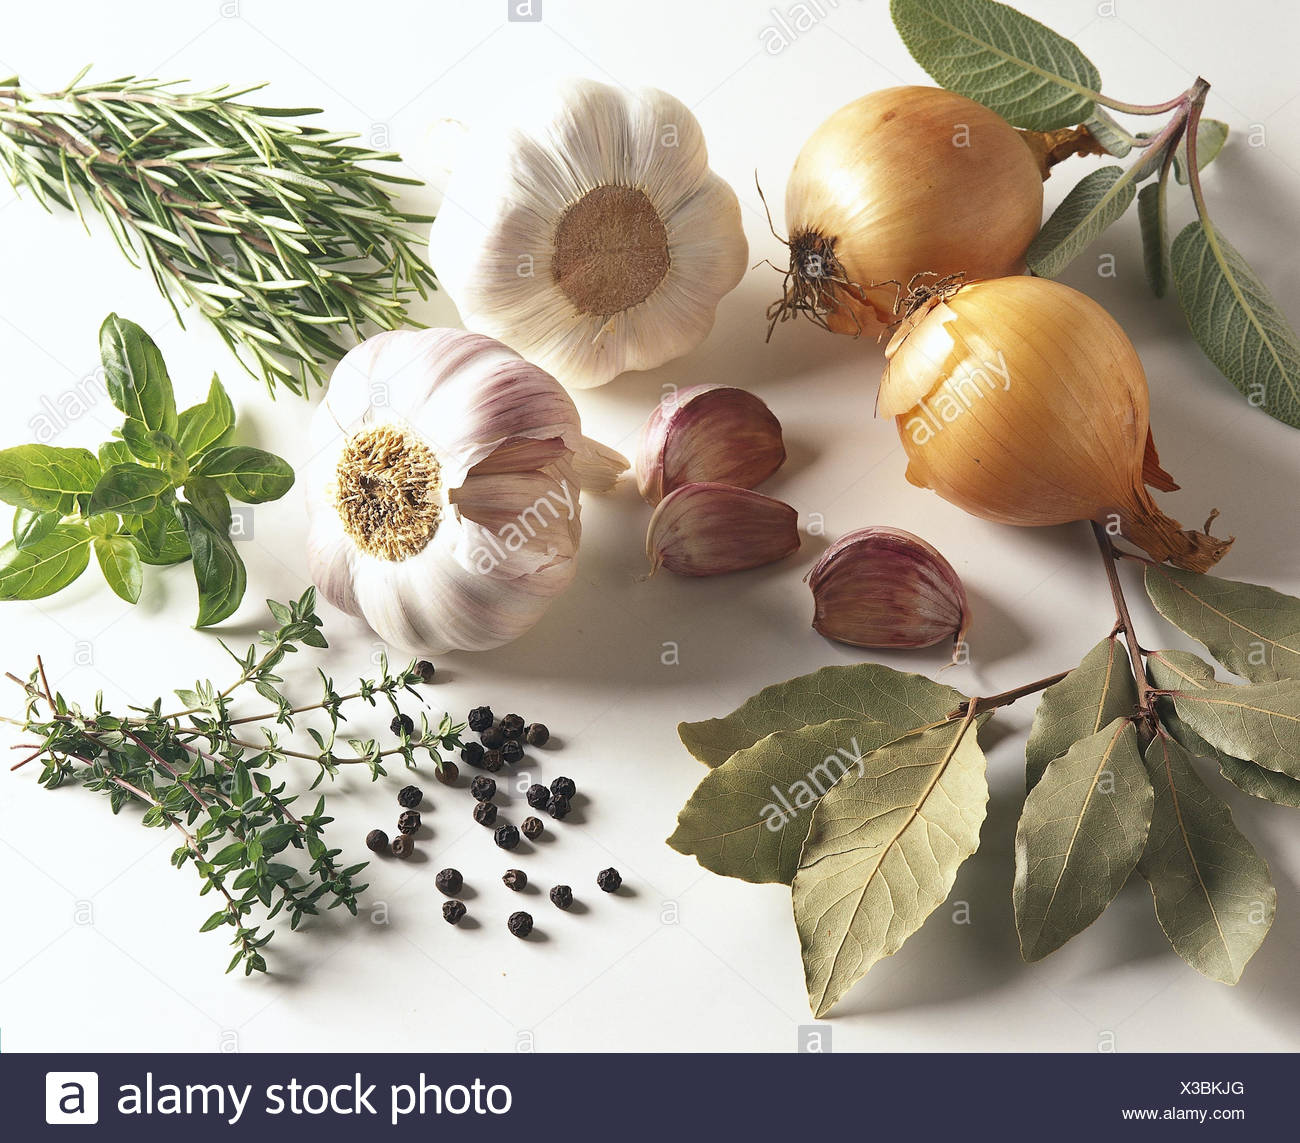 Still life, culinary spices, different, spices, bulbs